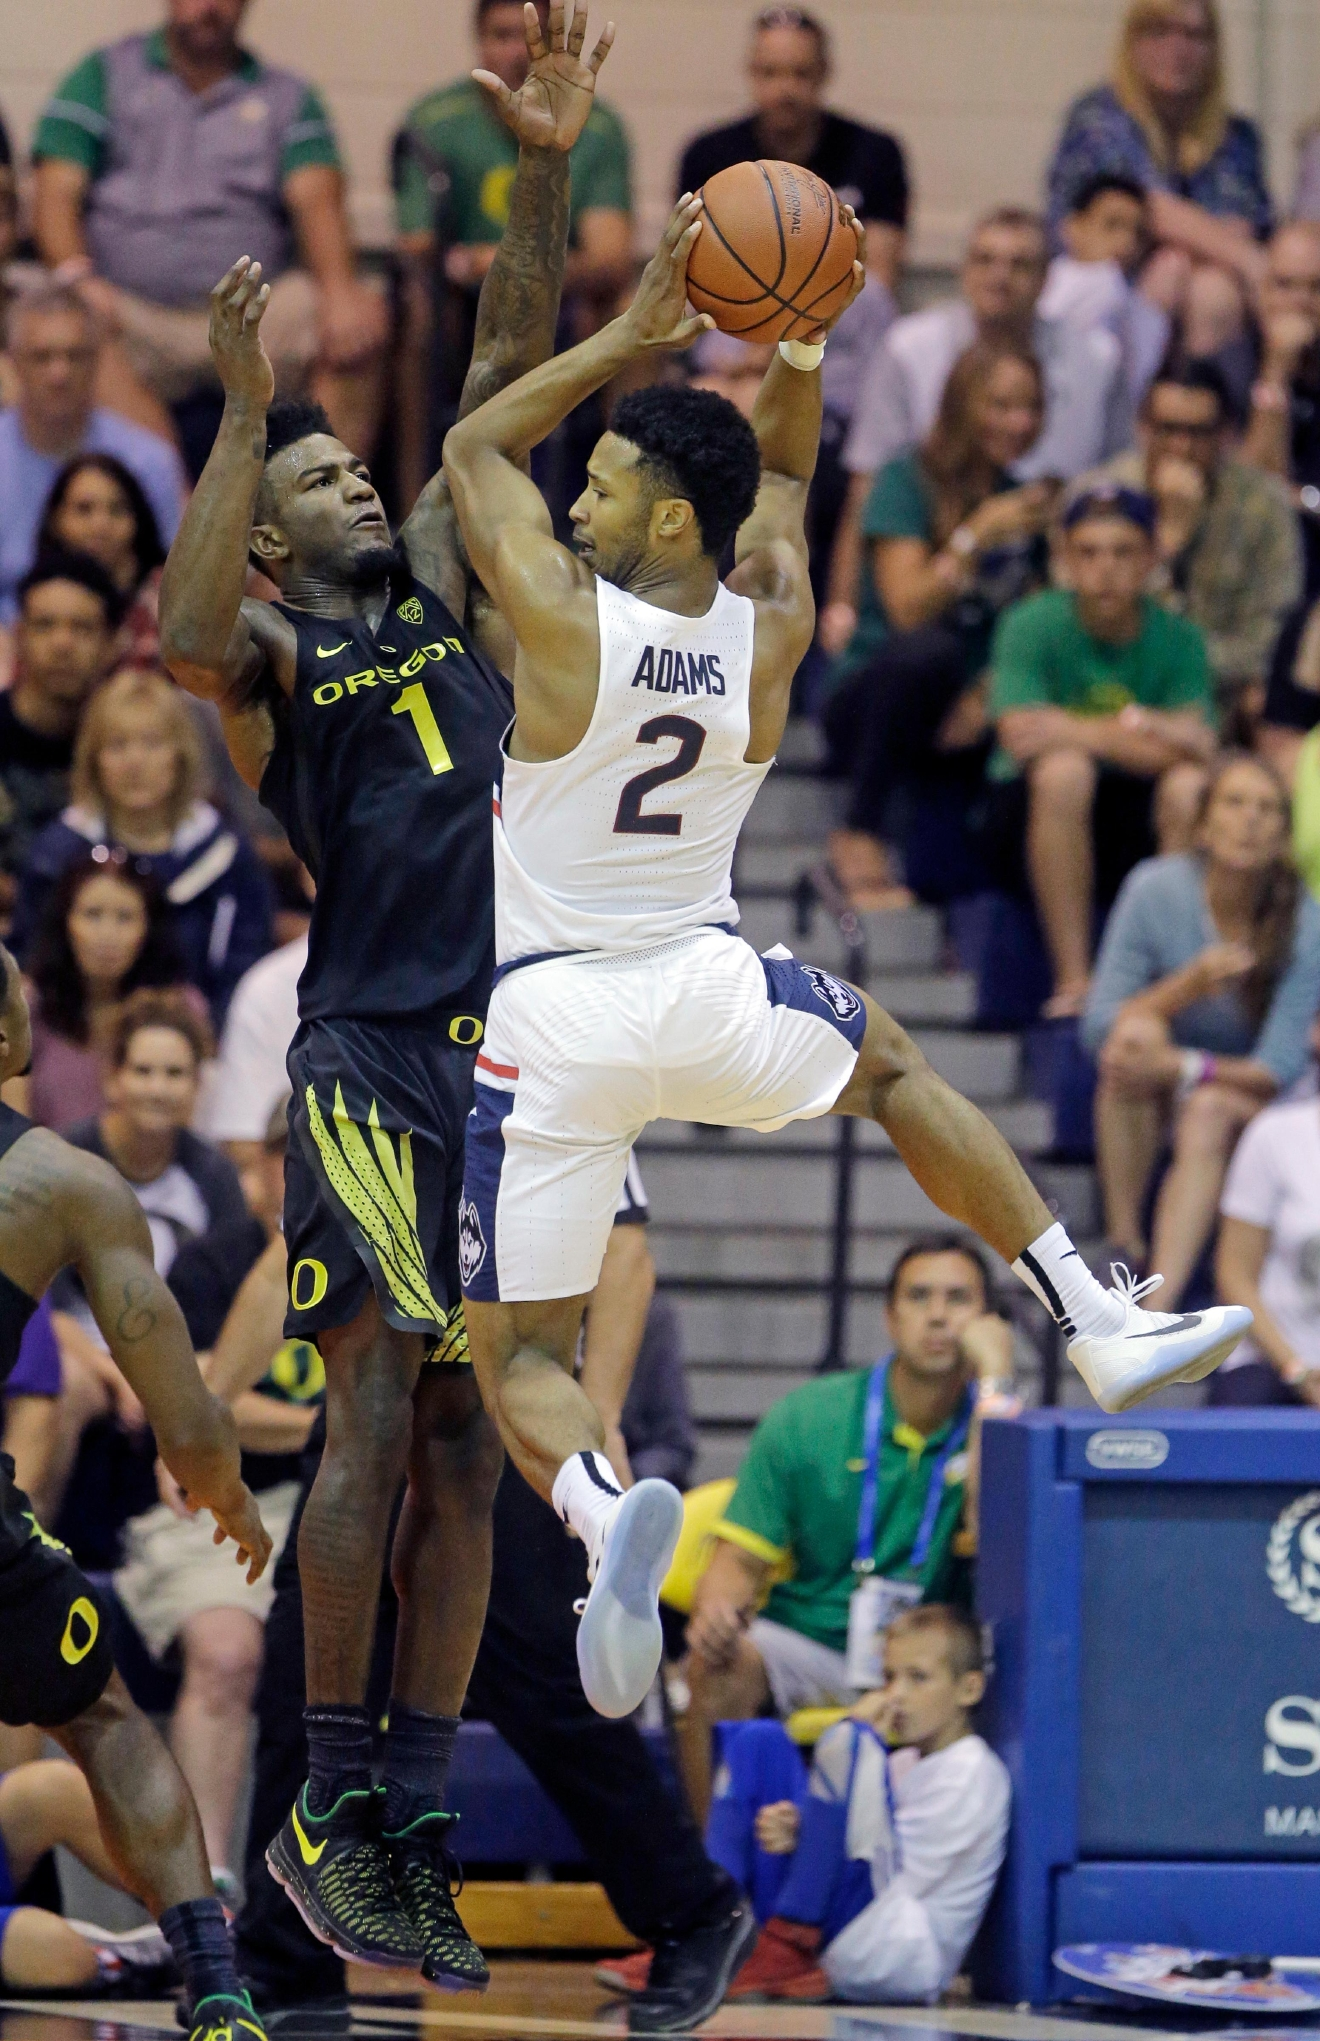 Oregon forward Jordan Bell (1) defends against Connecticut guard Jalen Adams (2) in the first half during an NCAA college basketball game in the Maui Invitational Wednesday, Nov. 23, 2016, in Lahaina, Hawaii. (AP Photo/Rick Bowmer)